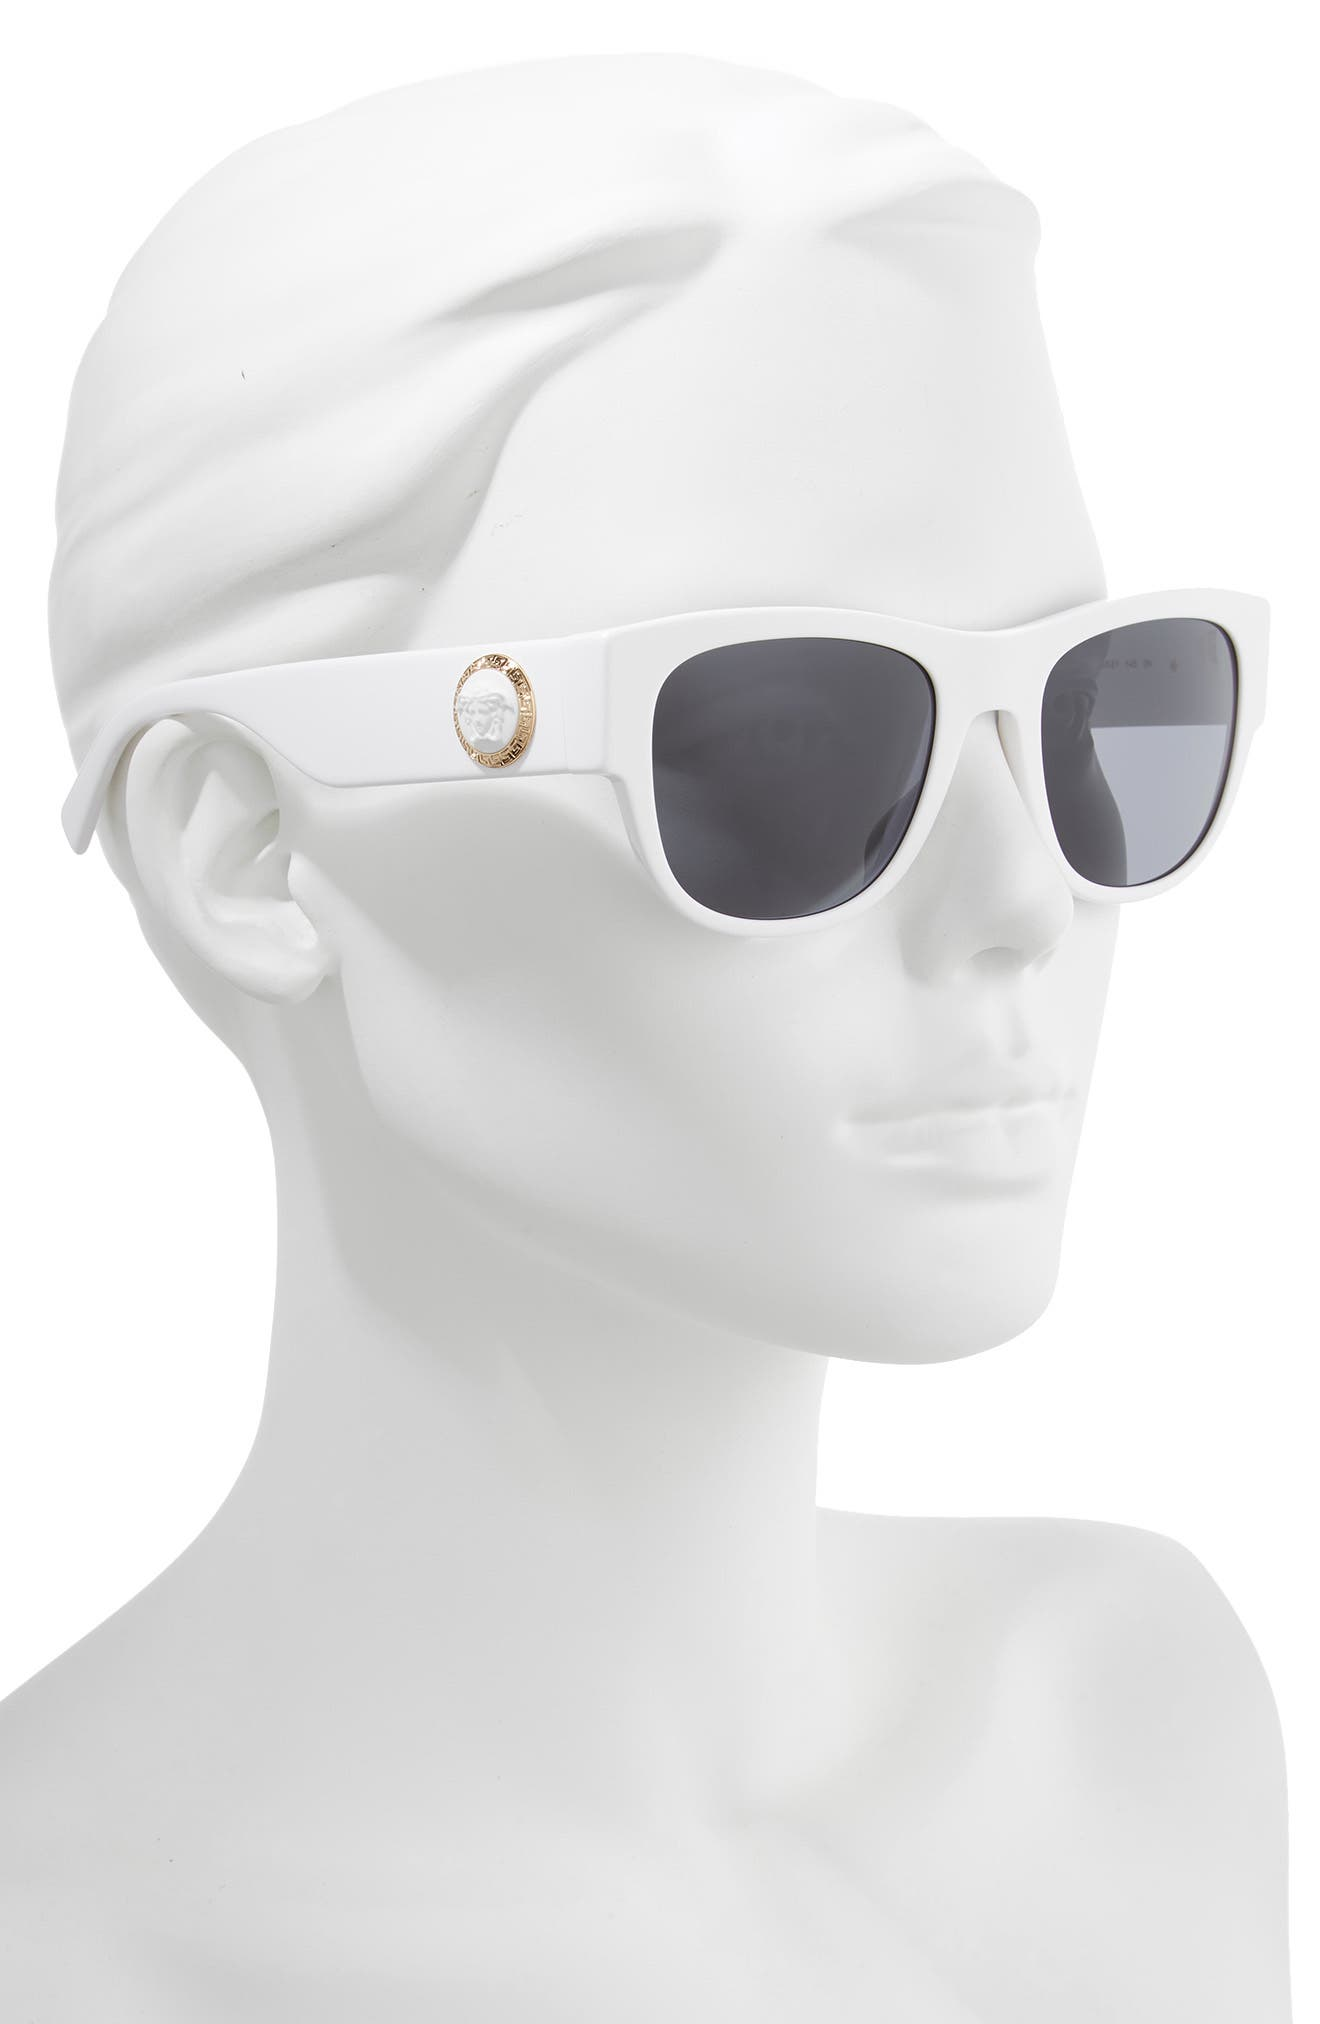 55mm Square Sunglasses,                             Alternate thumbnail 2, color,                             WHITE/ GREY SOLID